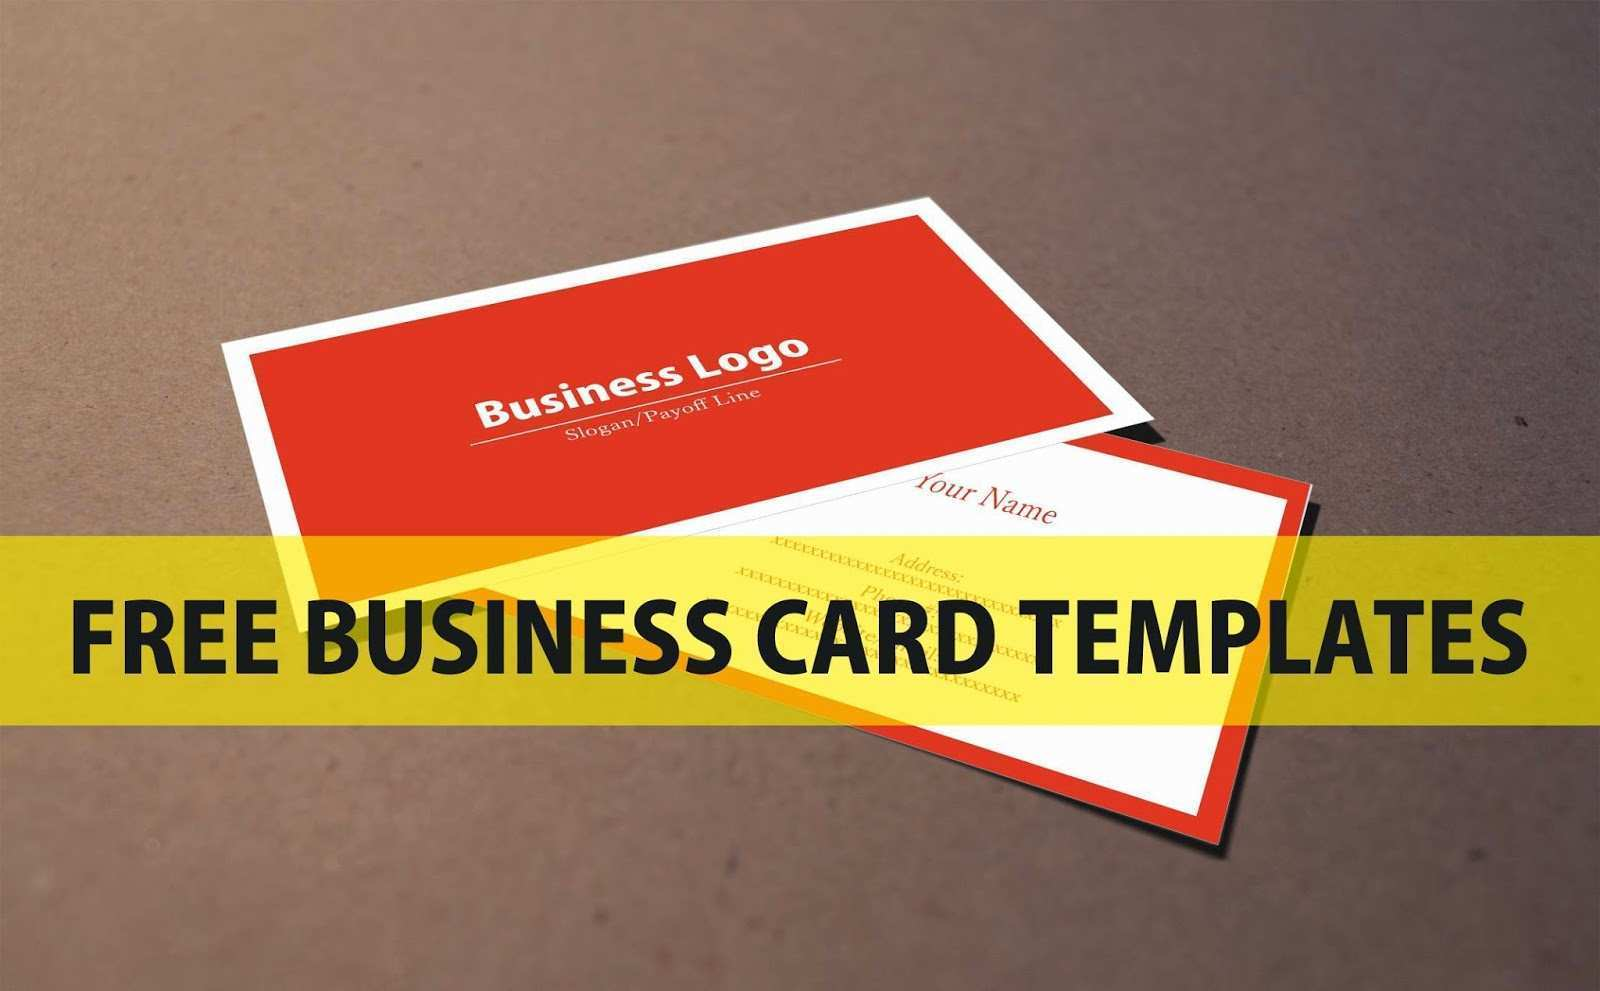 36 Blank Business Card Templates Download Corel Draw With Stunning Design by Business Card Templates Download Corel Draw